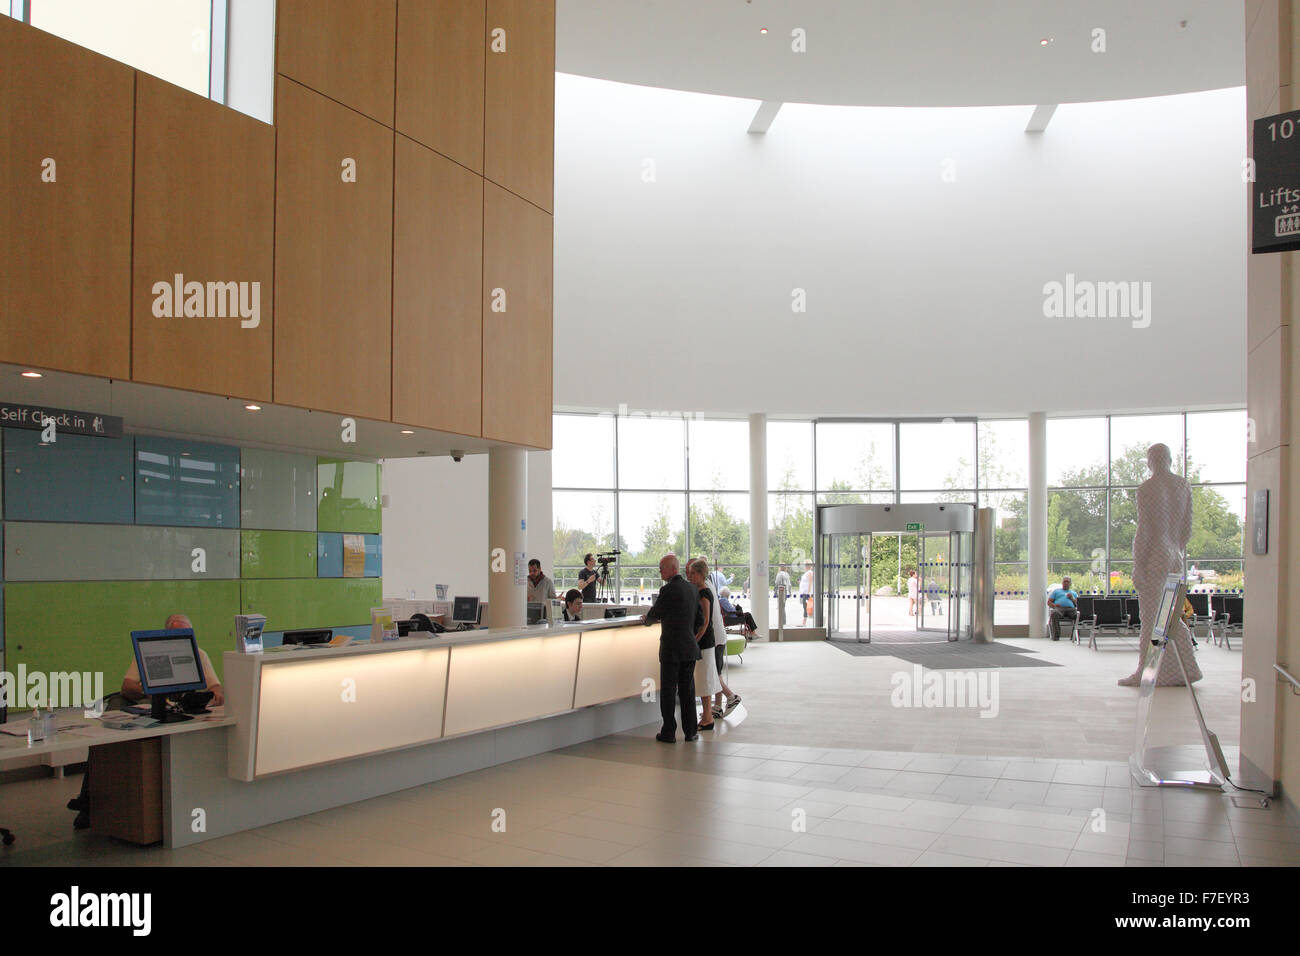 Hospital Check In Area : Main reception and public areas at the broomfield hospital